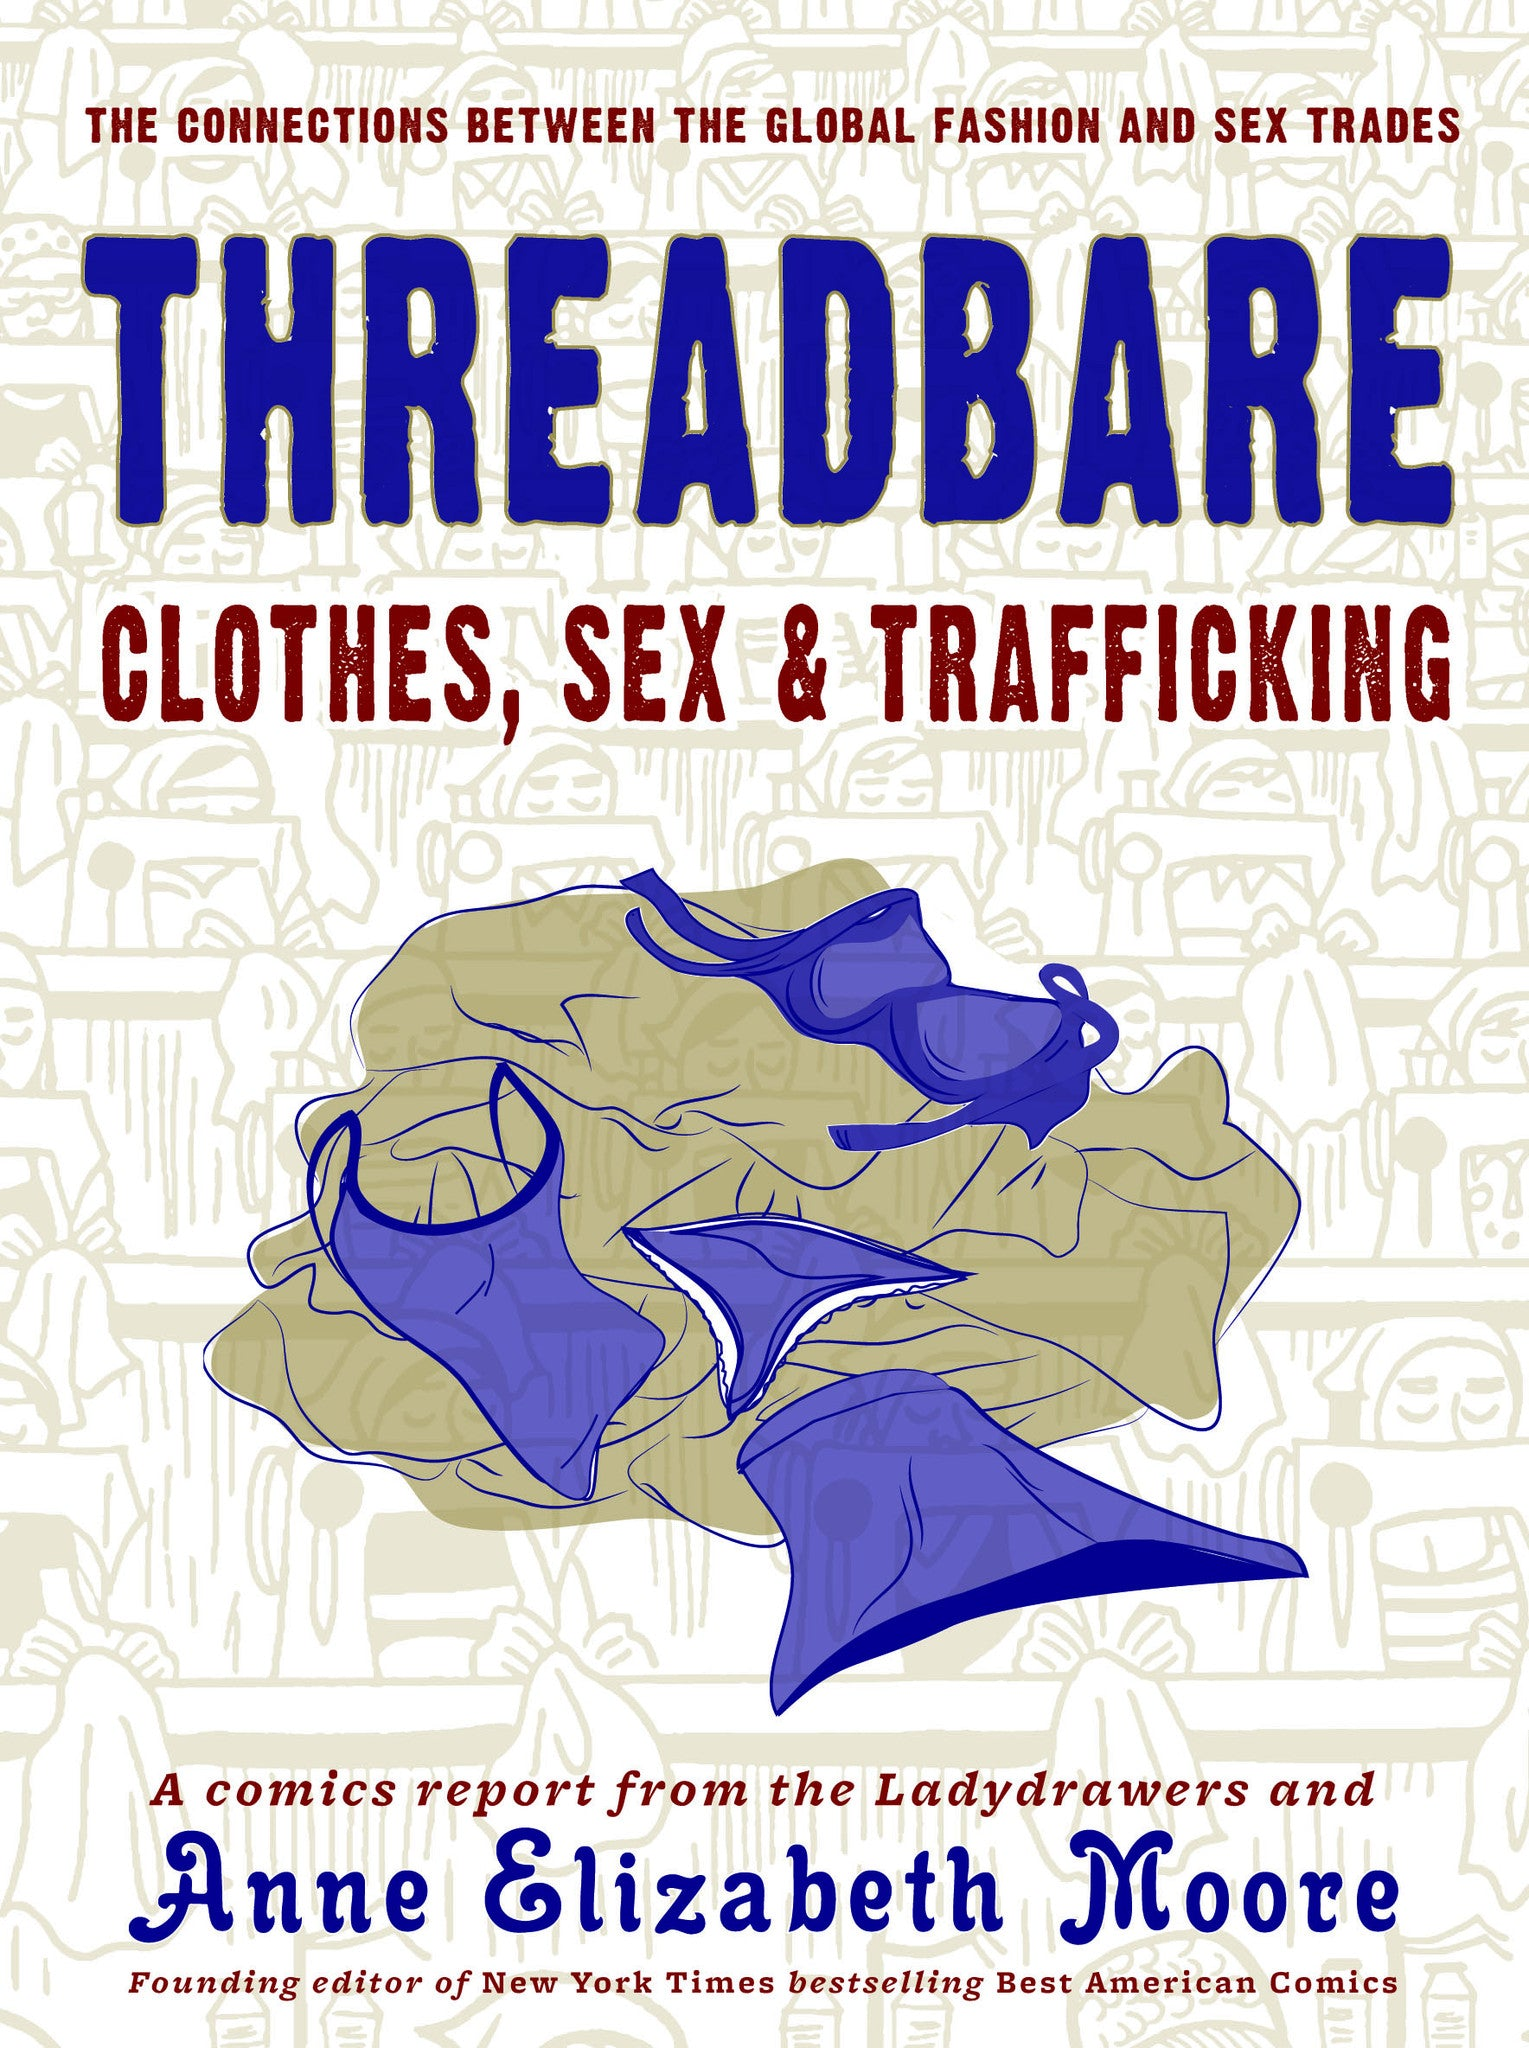 Threadbare by Anne Elizabeth Moore and the Ladydrawers